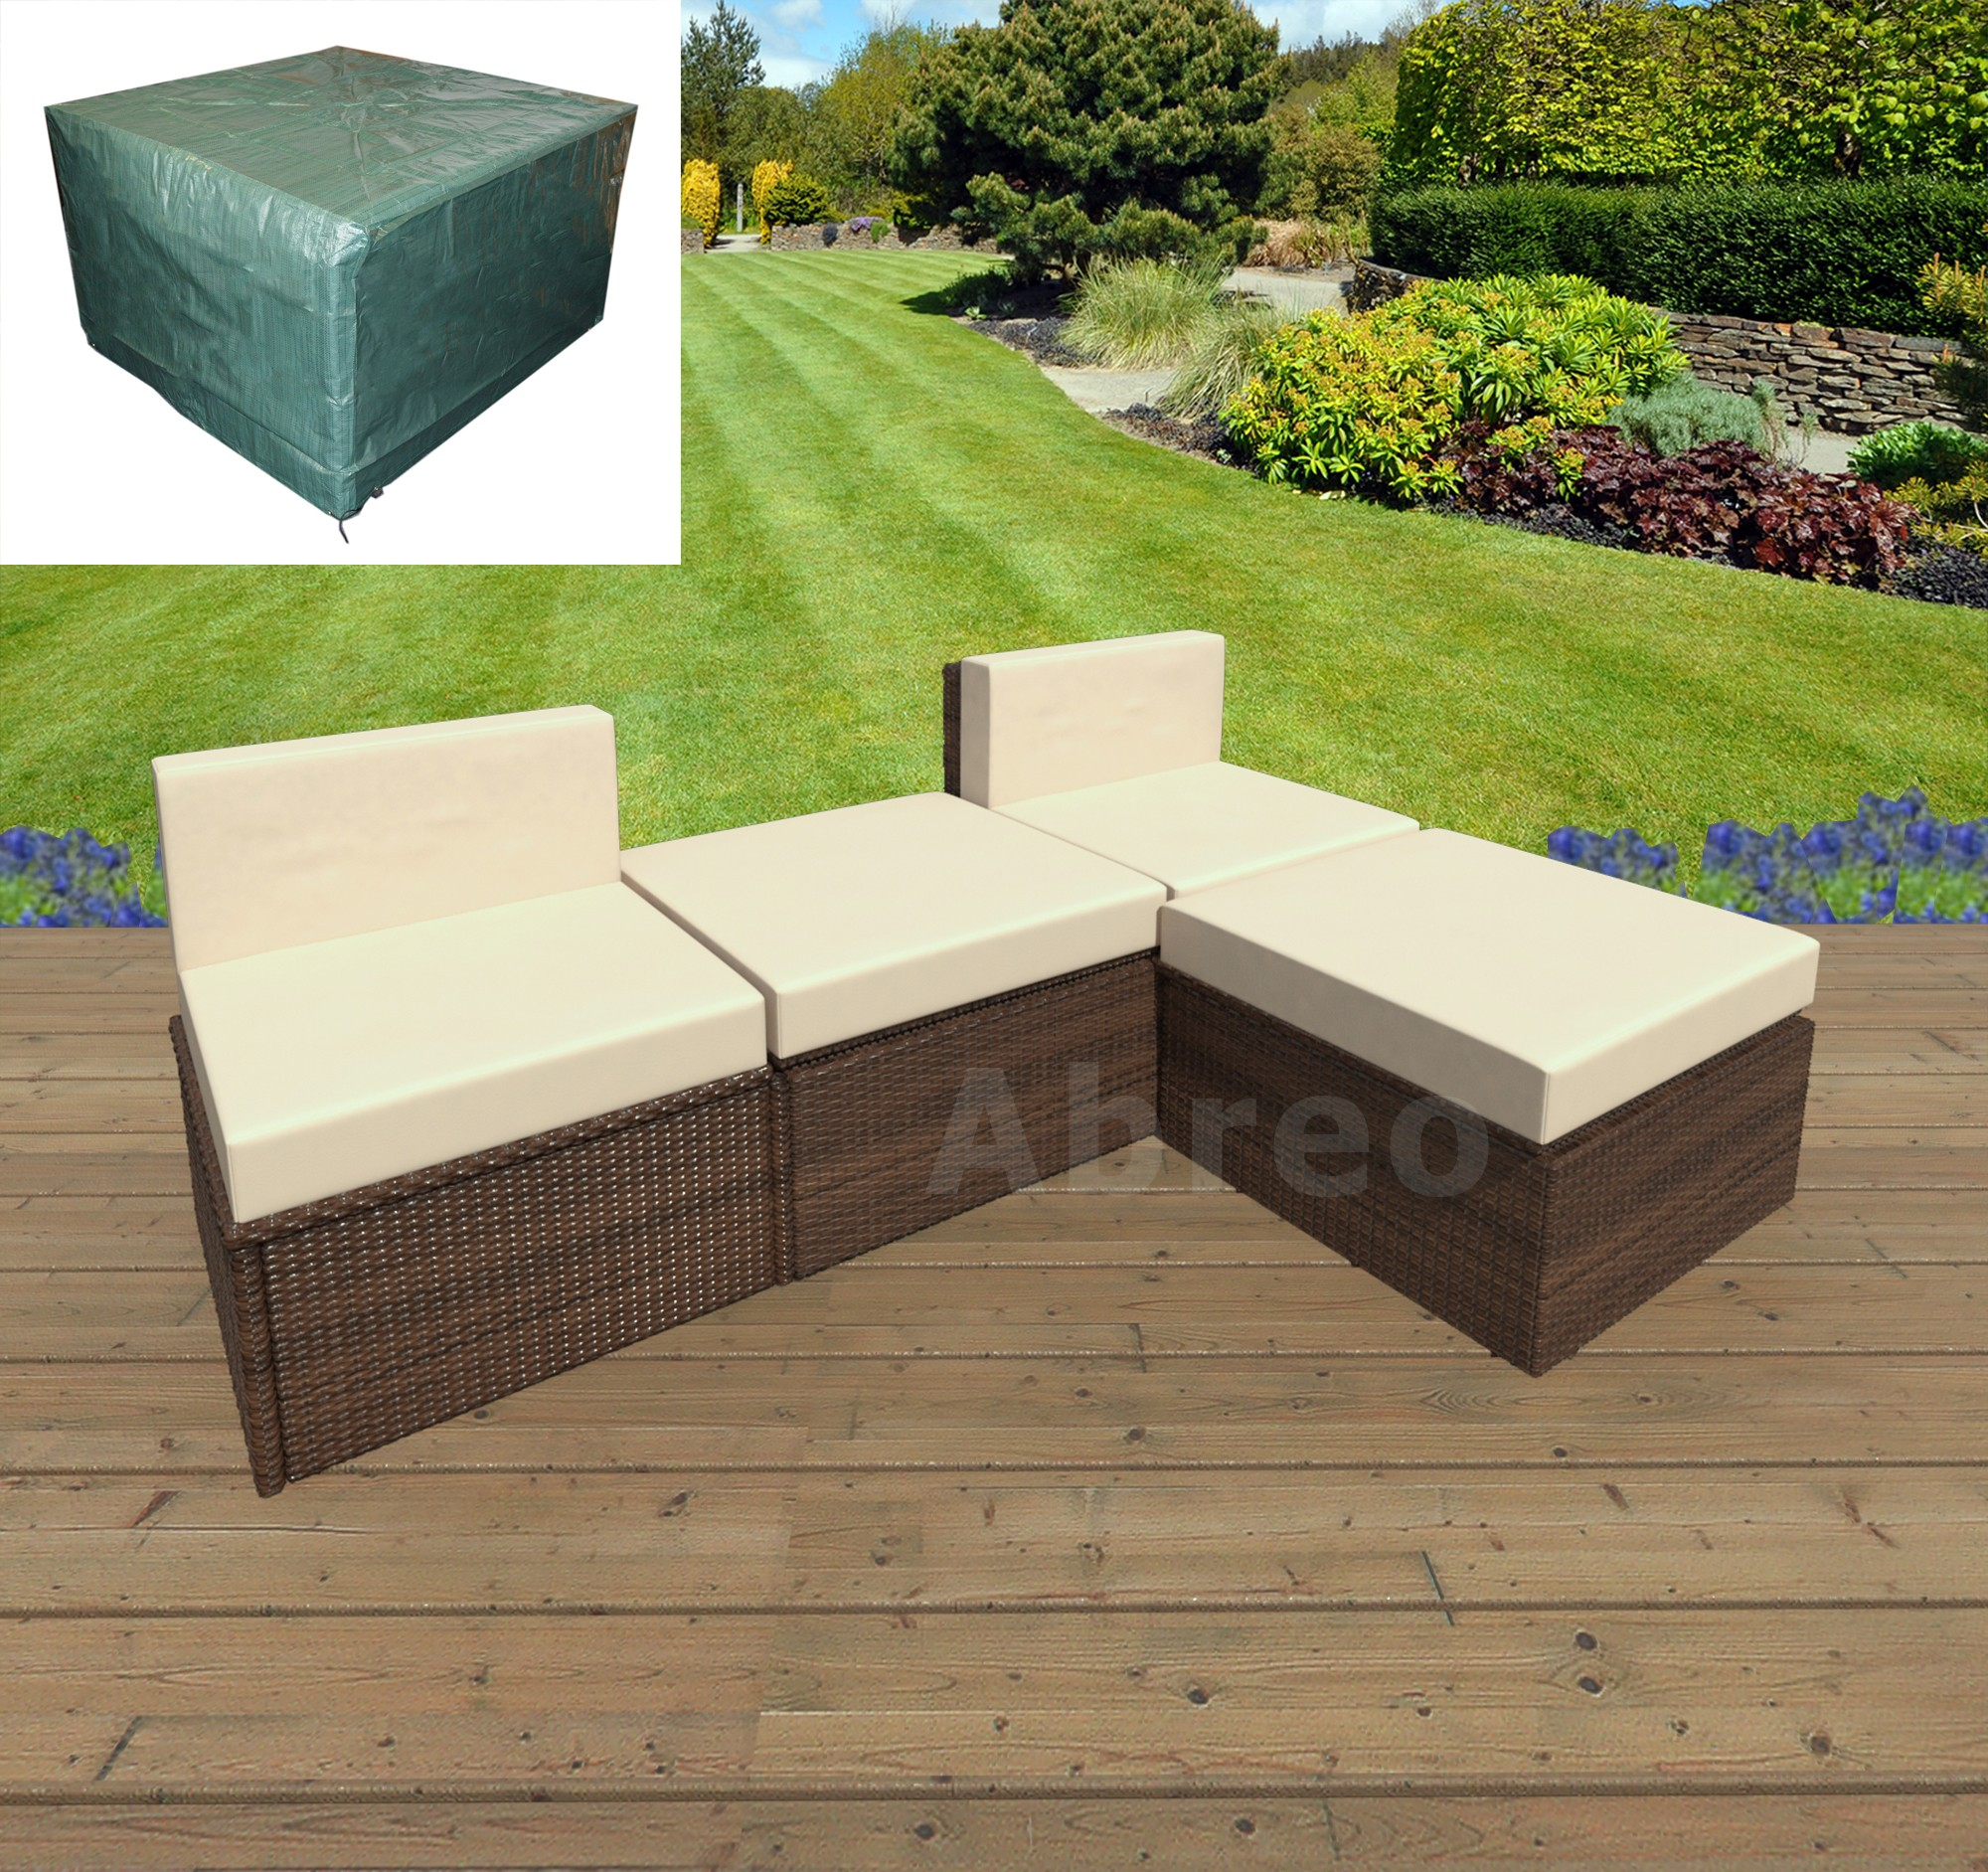 Camelot Garden Furniture Covers Fabulous garden furniture algarve 4 piece algarve rattan sofa set for patios conservatories and two single seats with two ottomans workwithnaturefo